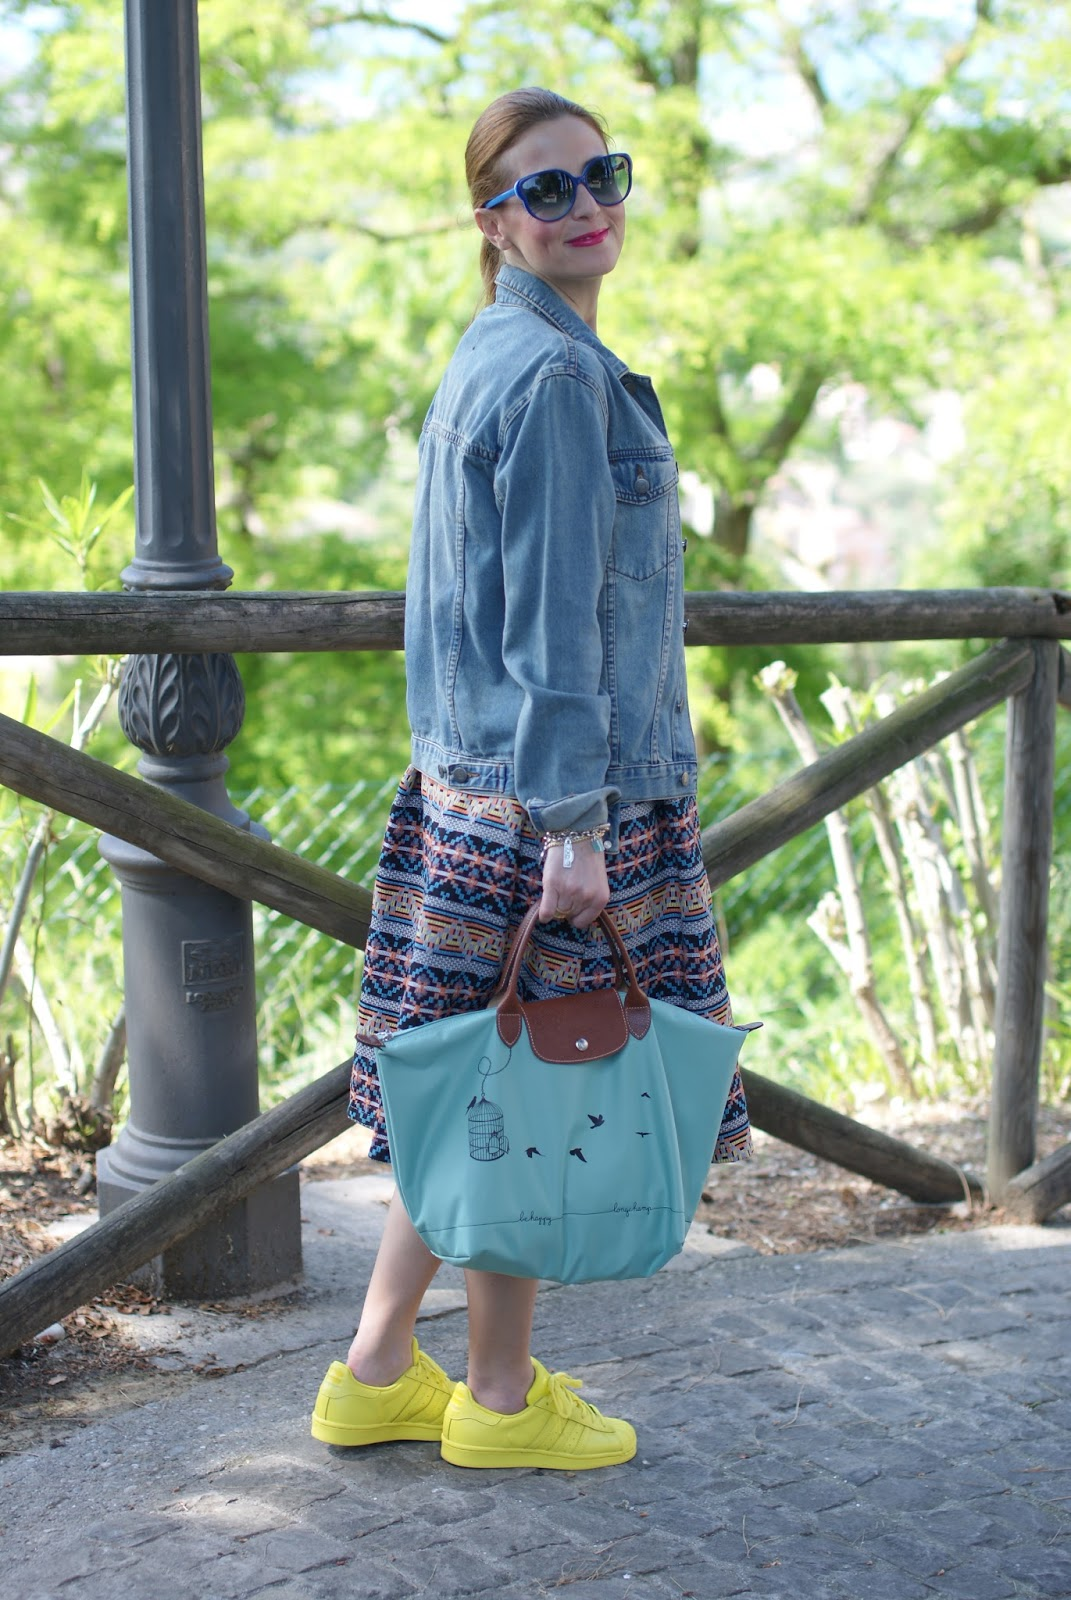 Le Pliage 2015, Longchamp Le Pliage cage aux oiseaux bag, jacquard midi skirt, denim jacket, Fashion and Cookies fashion blog